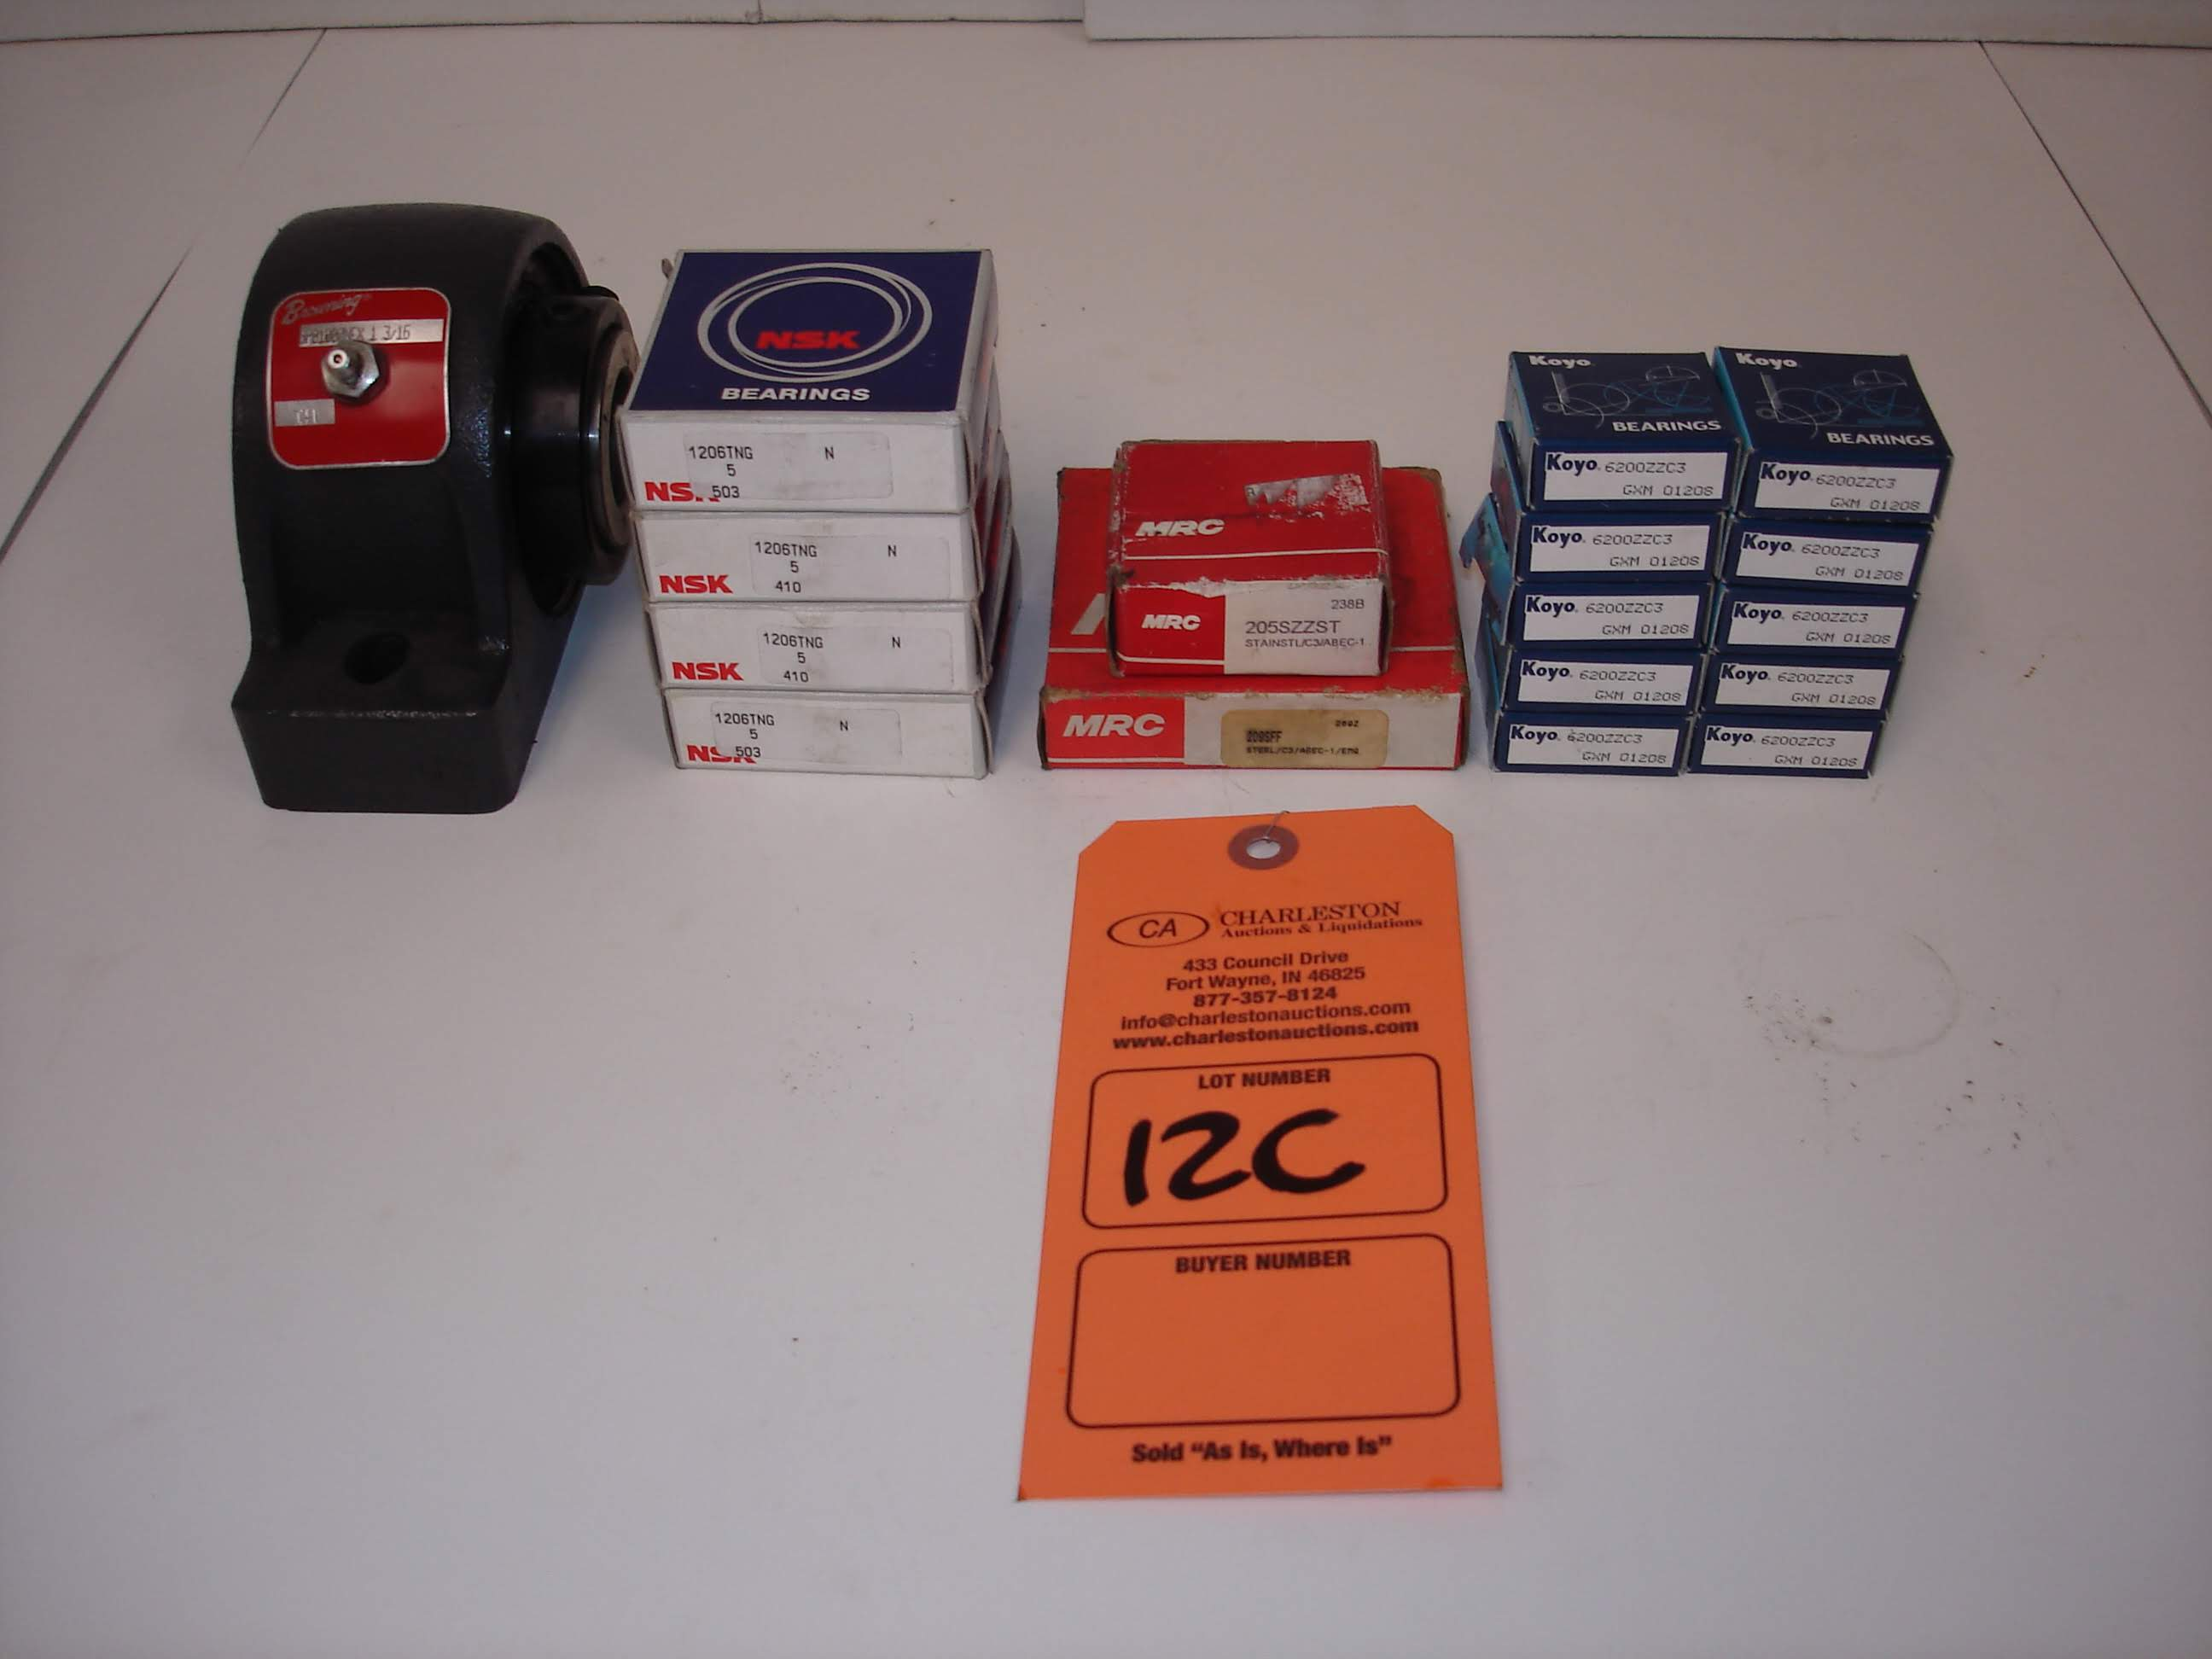 Lot 12C - (17) MISC BRANDED BEARINGS: BROWNING SPB1000NEX PILLOW BLOCK BEARING AND ALL OTHER ITEMS INCLUDED IN